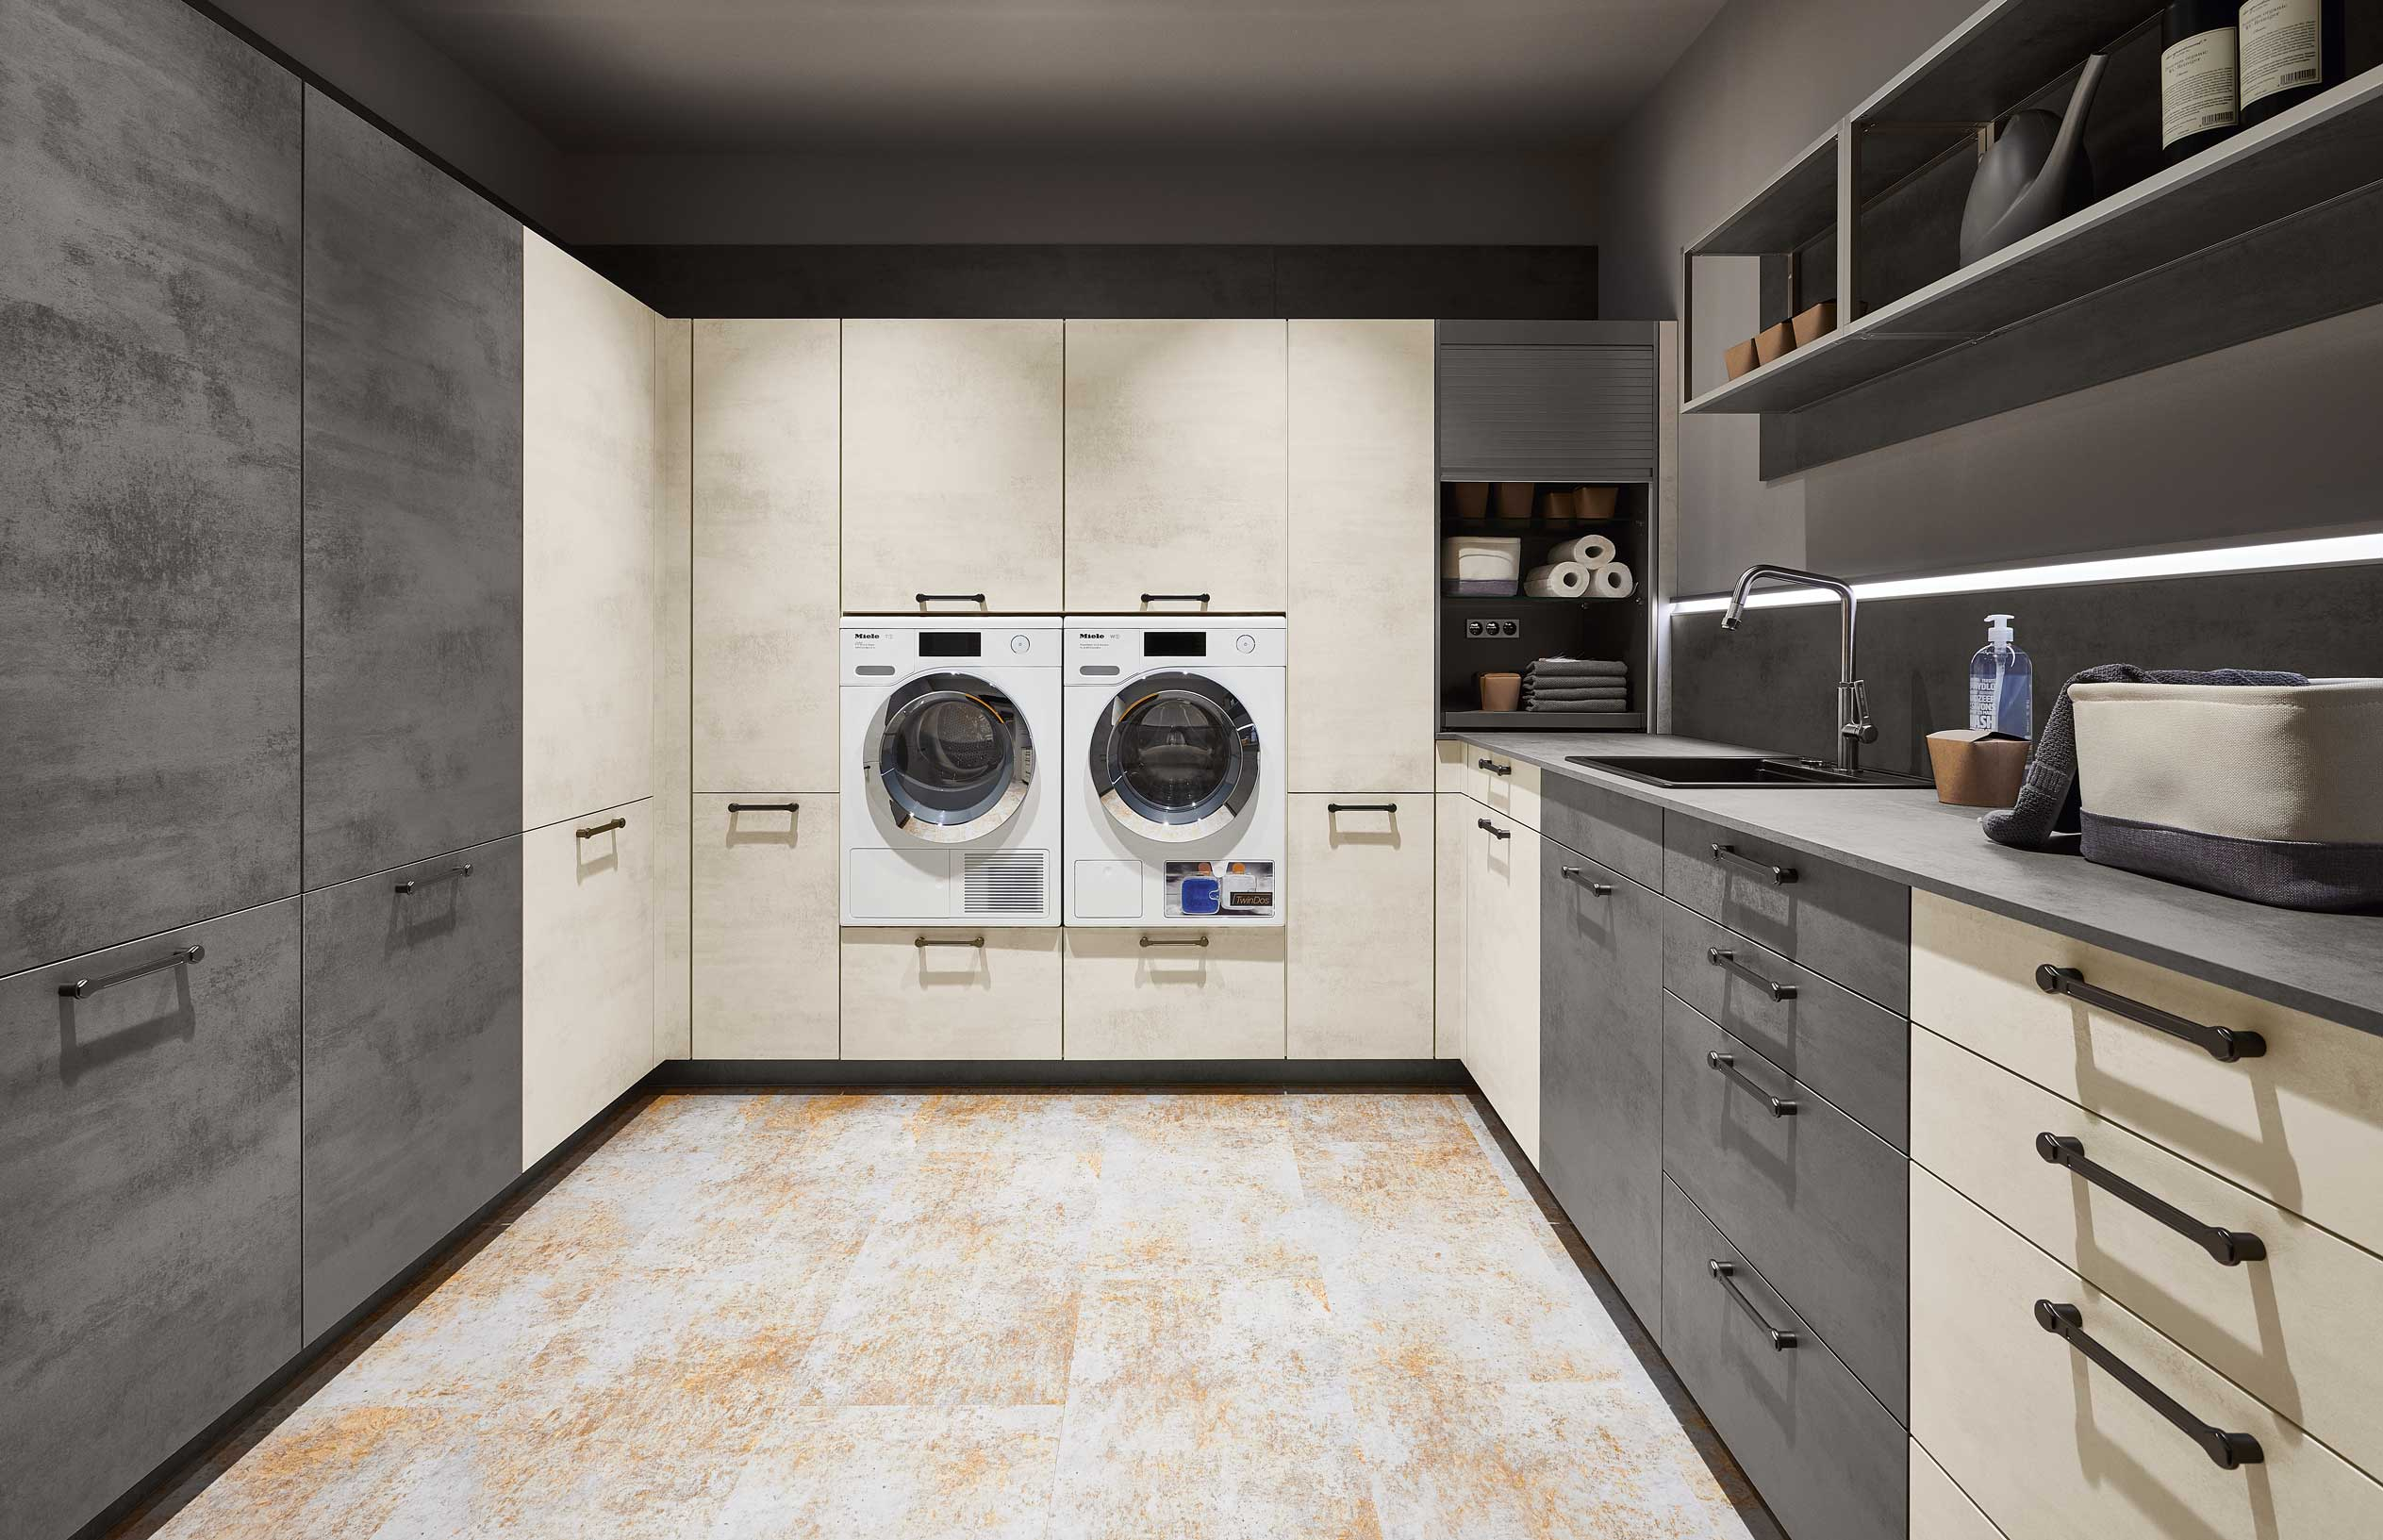 Laundry Room Modern Cabinets German Kitchen Cabinets California